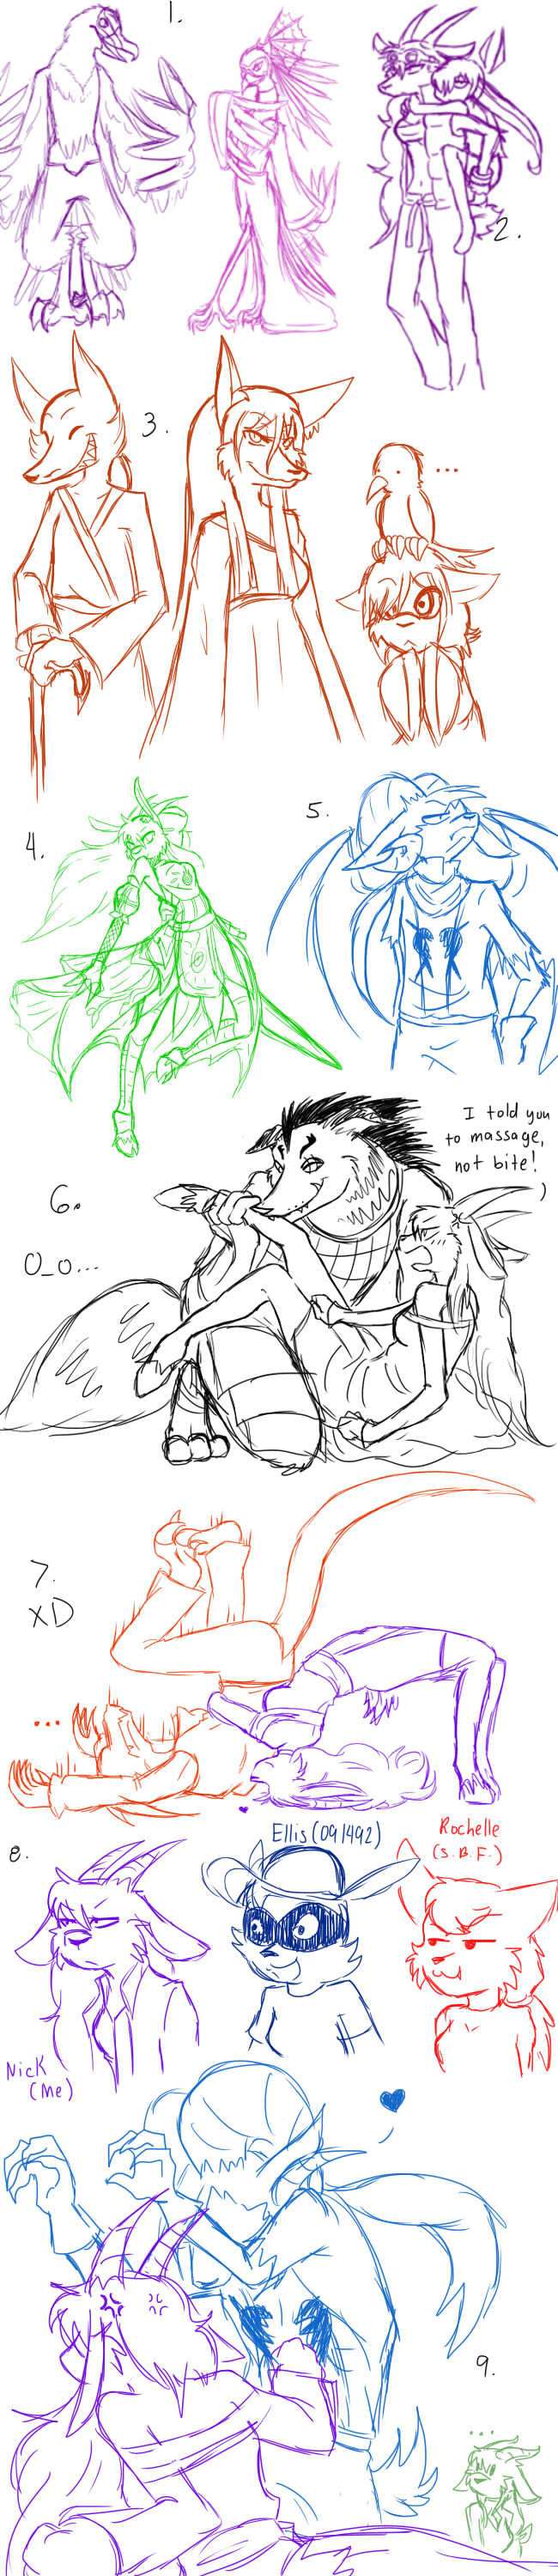 Sketchdump 5 by SkitzOpheliac